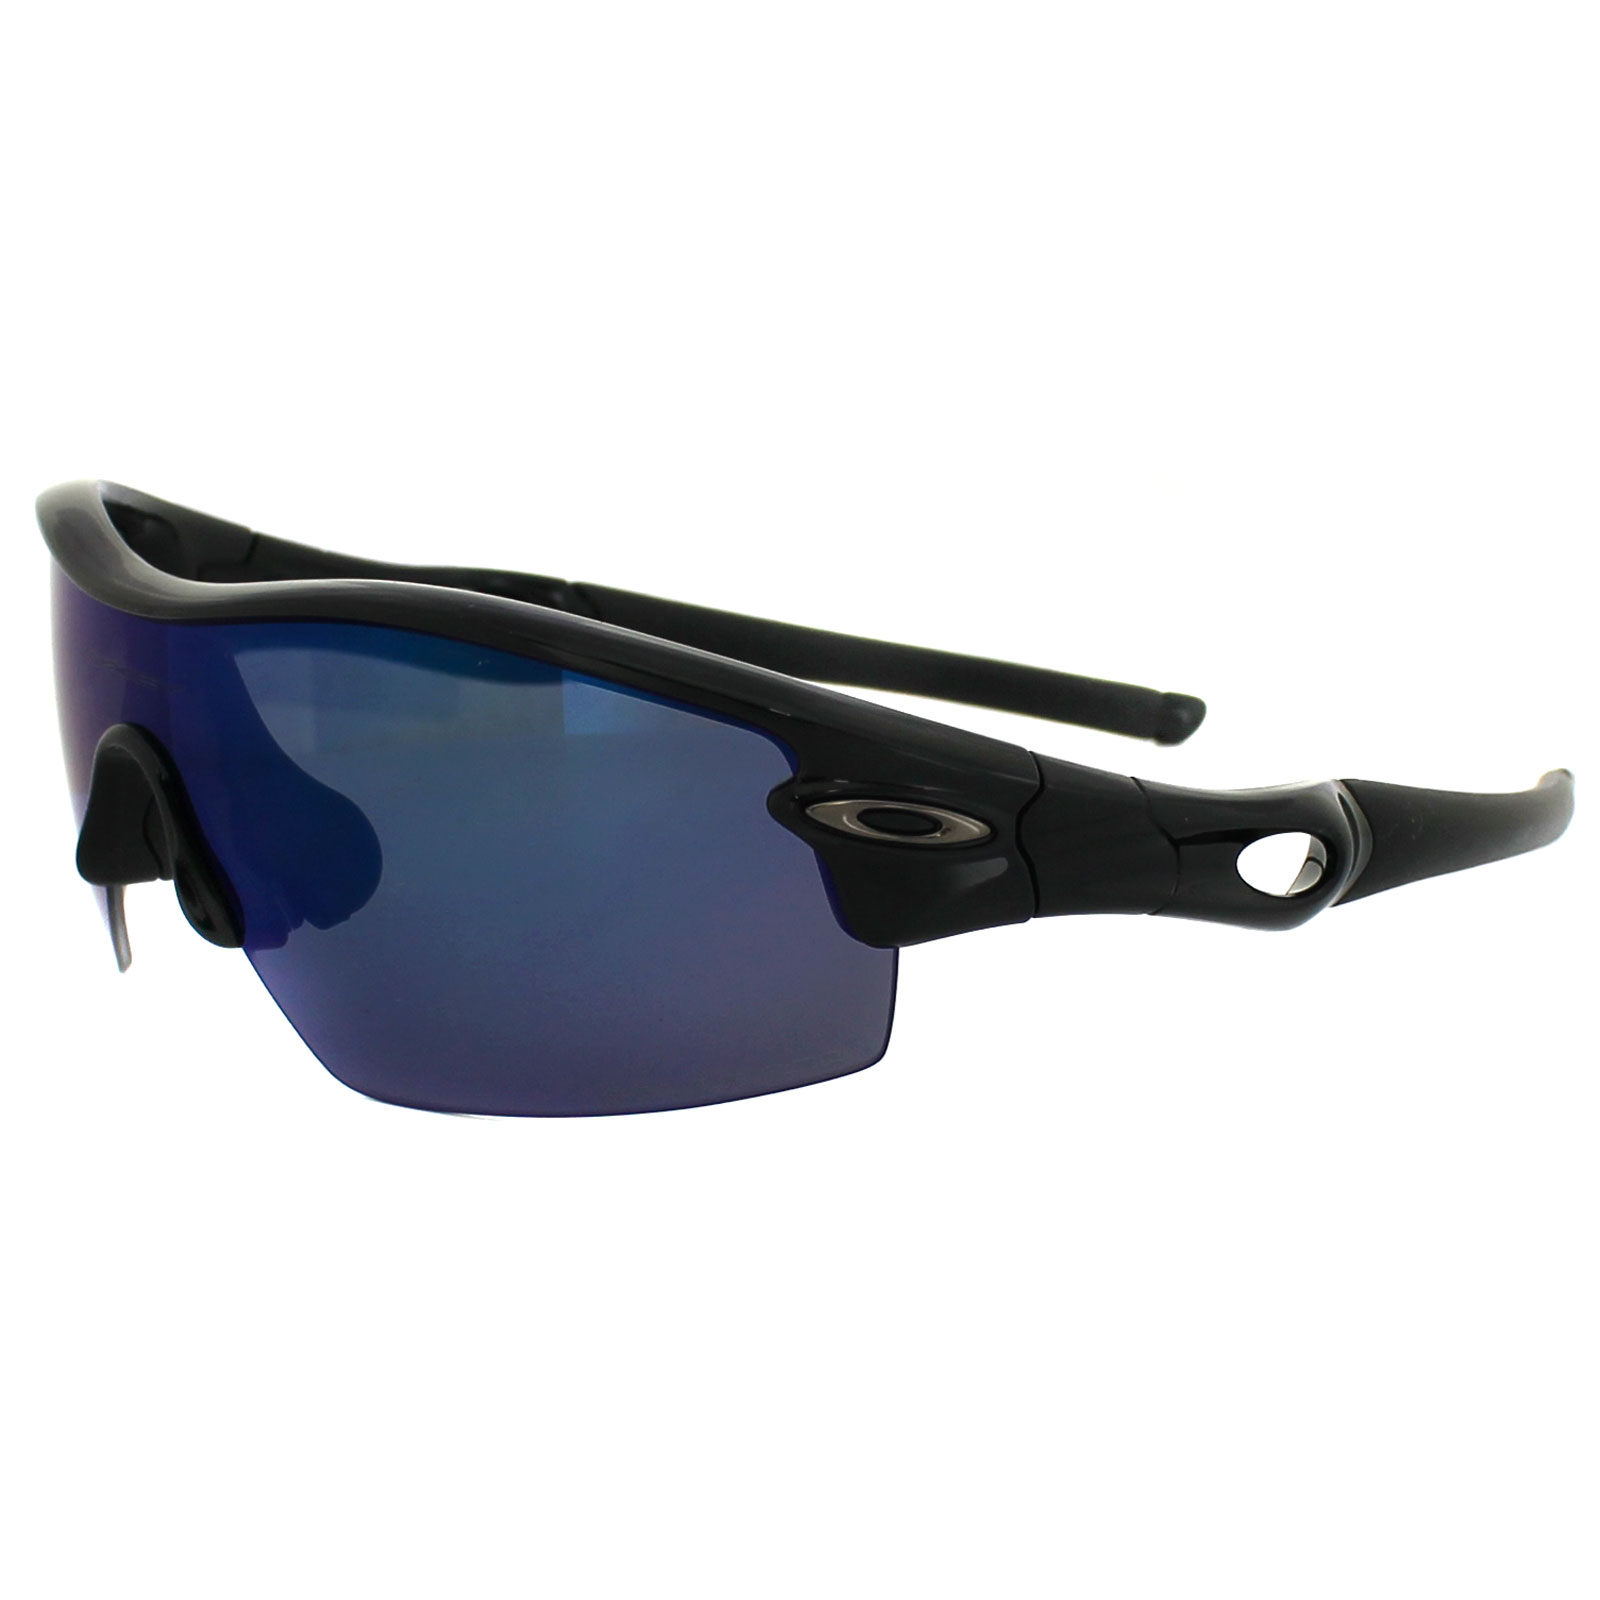 oakley sunglasses seconds  oakley solbriller seconds